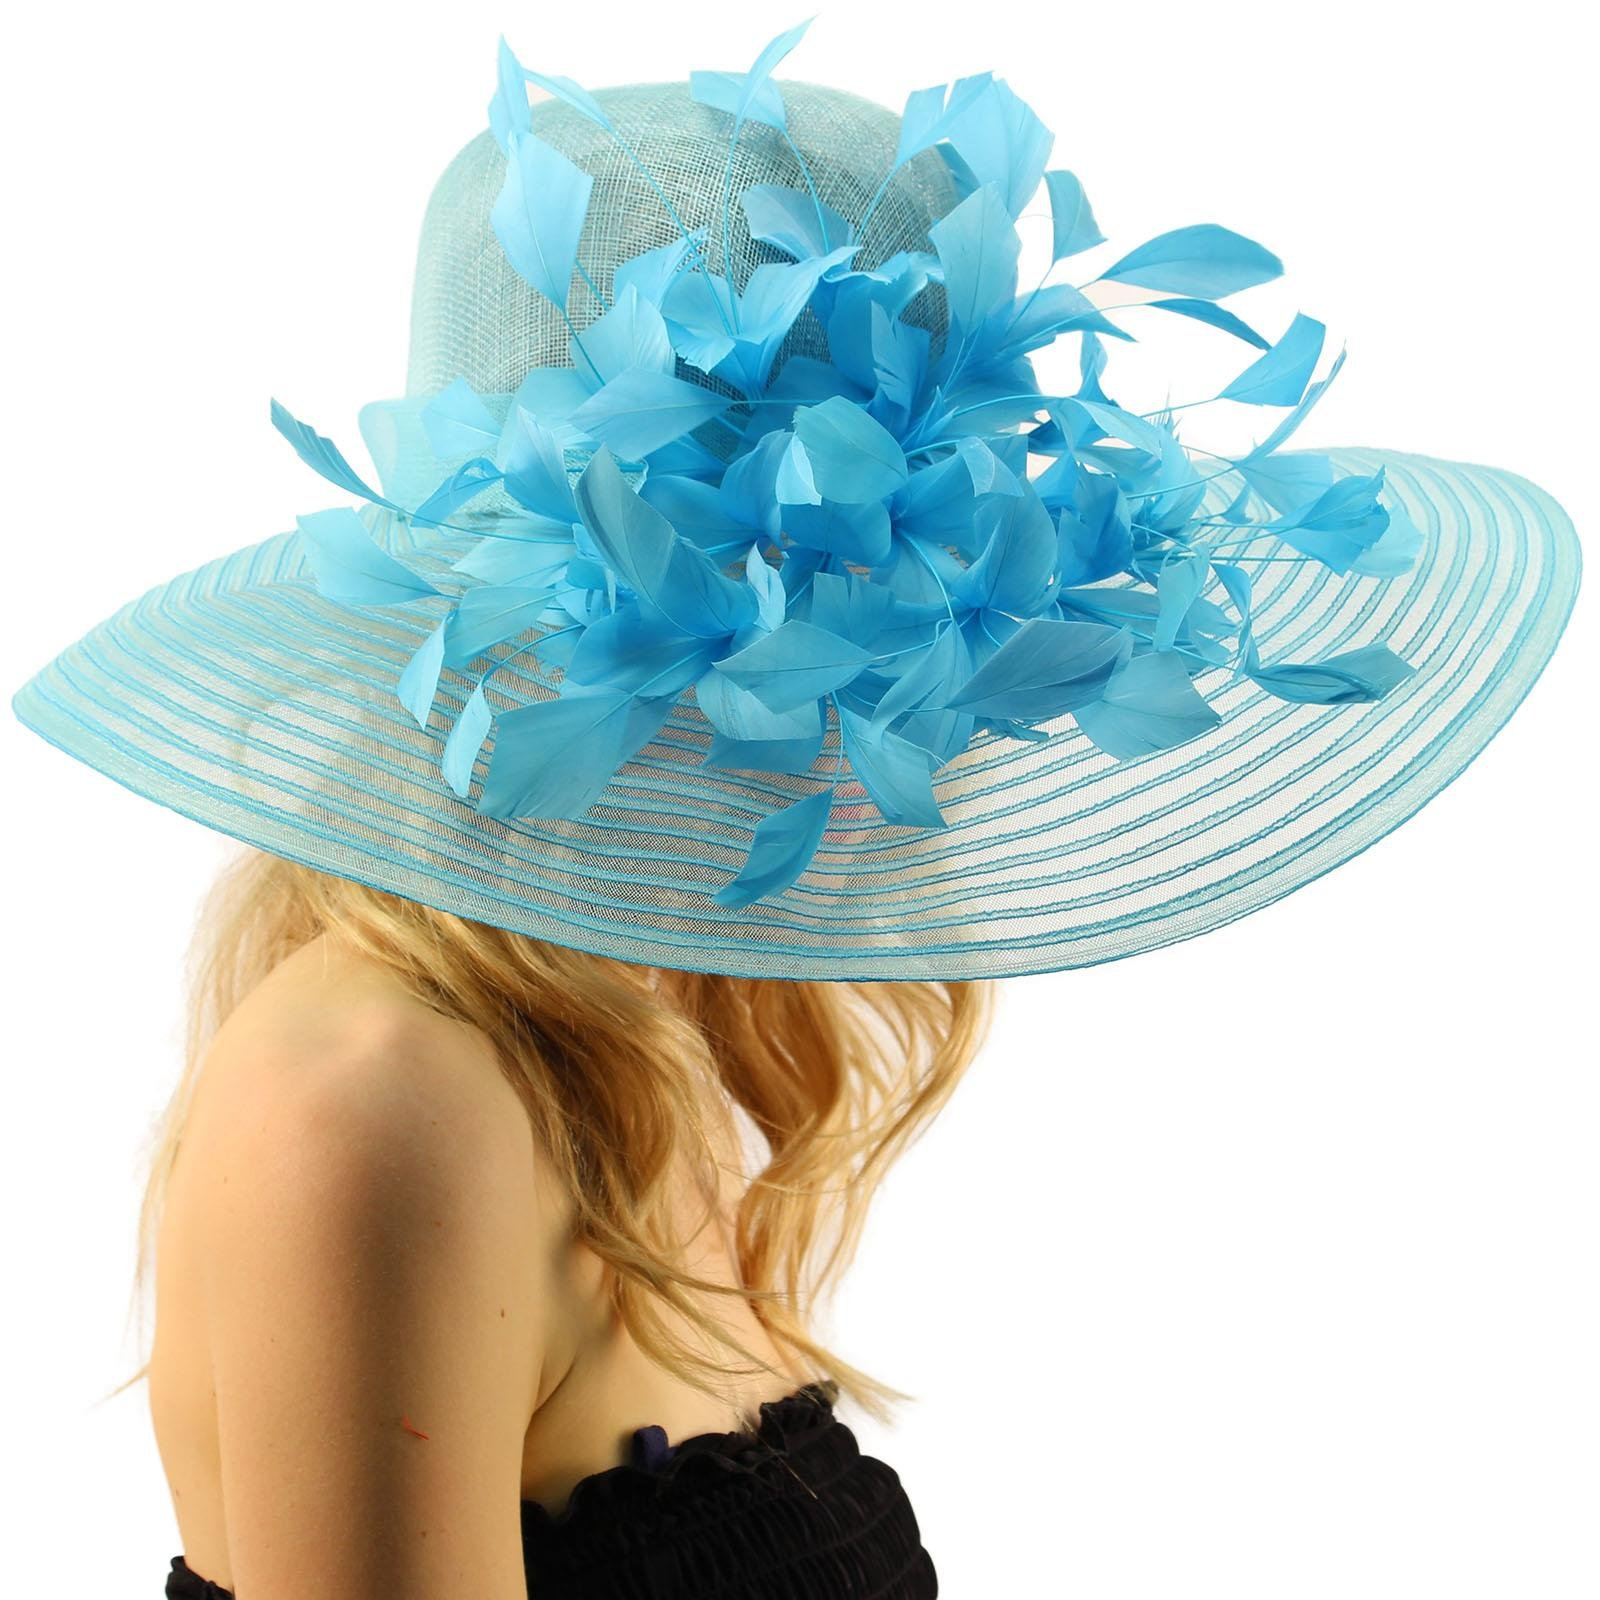 SK Hat shop Spectacular Spray Feathers Sinamay Derby Floppy Wide Brim 7'' Dress Hat Turquoise by SK Hat shop